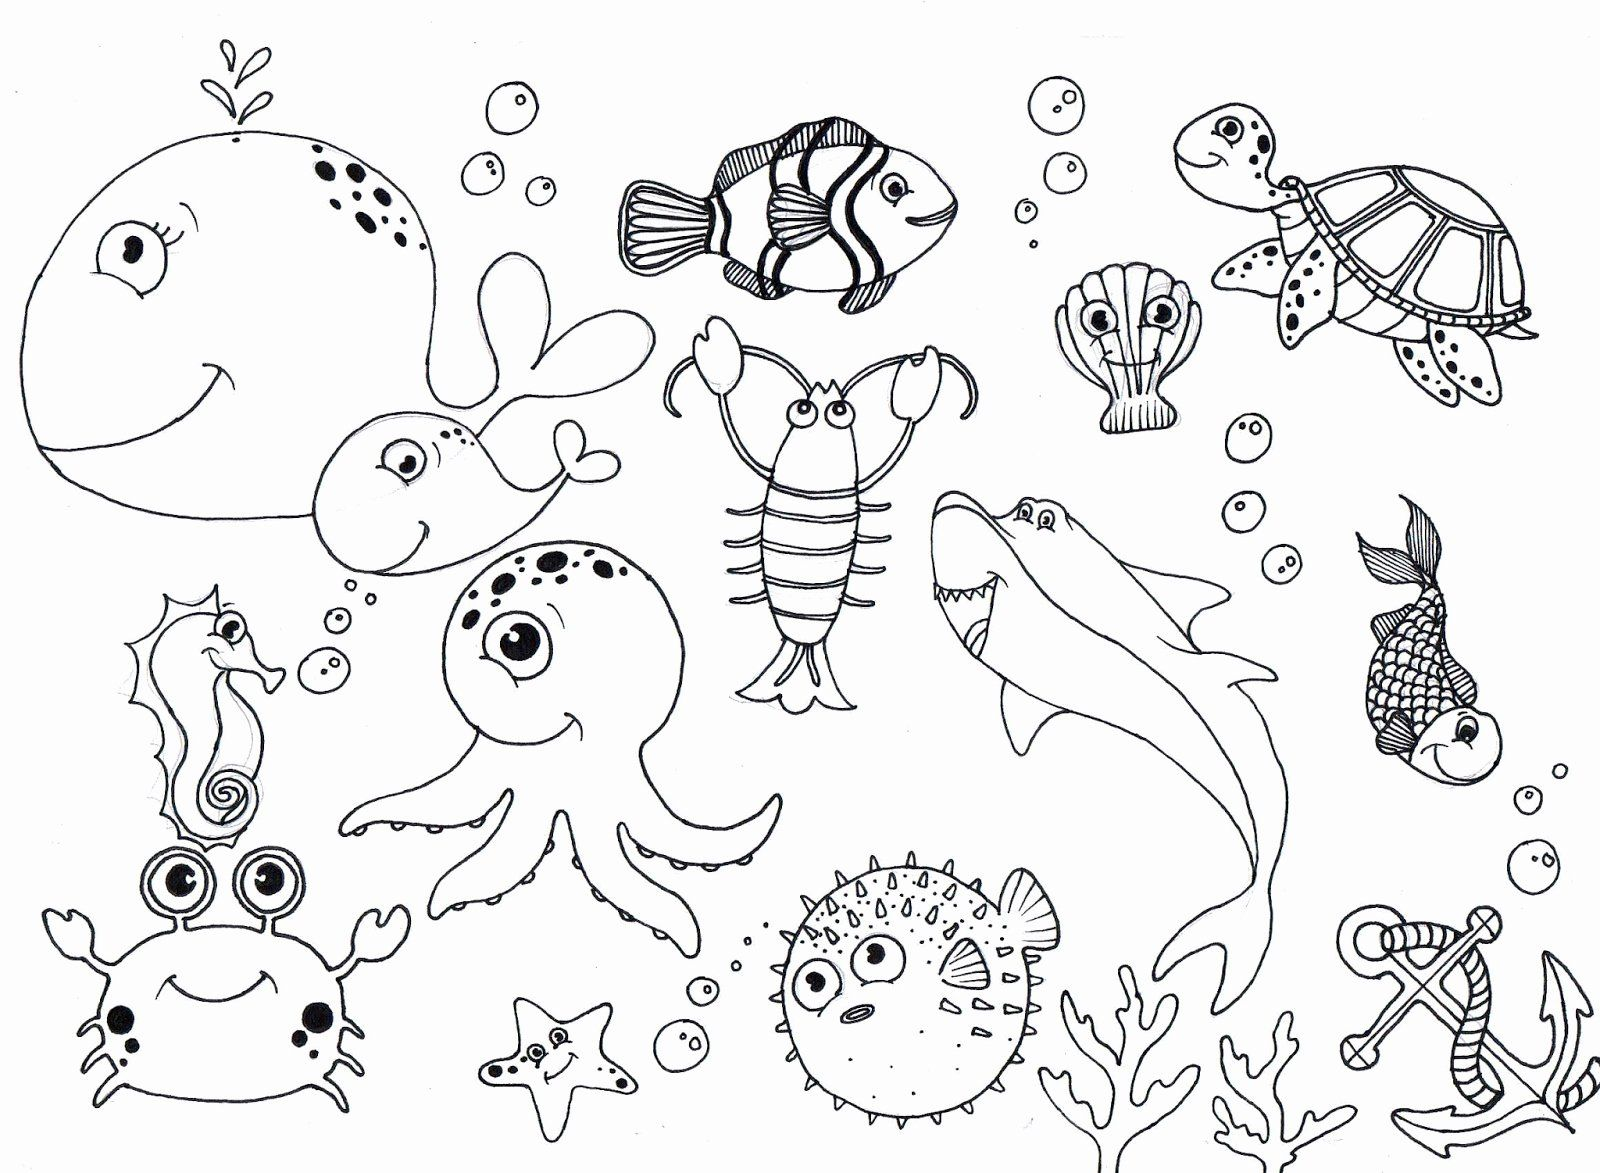 Ocean Animals Coloring Page Awesome Free Under The Sea Coloring Pages To Print For Kids In 2020 Ocean Coloring Pages Animal Coloring Pages Sea Drawing